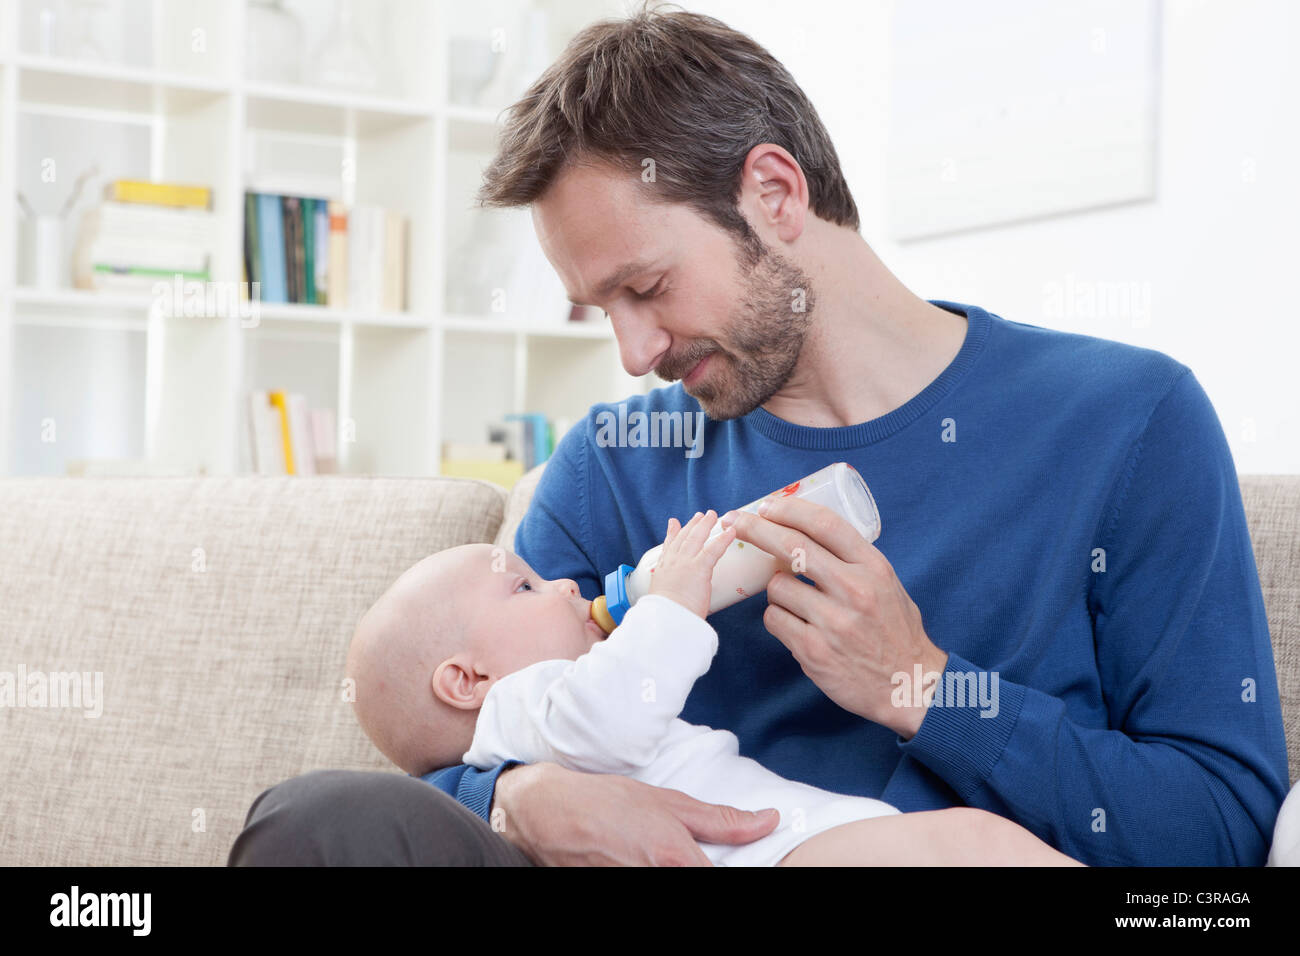 Germany, Bavaria, Munich, Father feeding milk to baby boy (6-11 Months) in living room - Stock Image